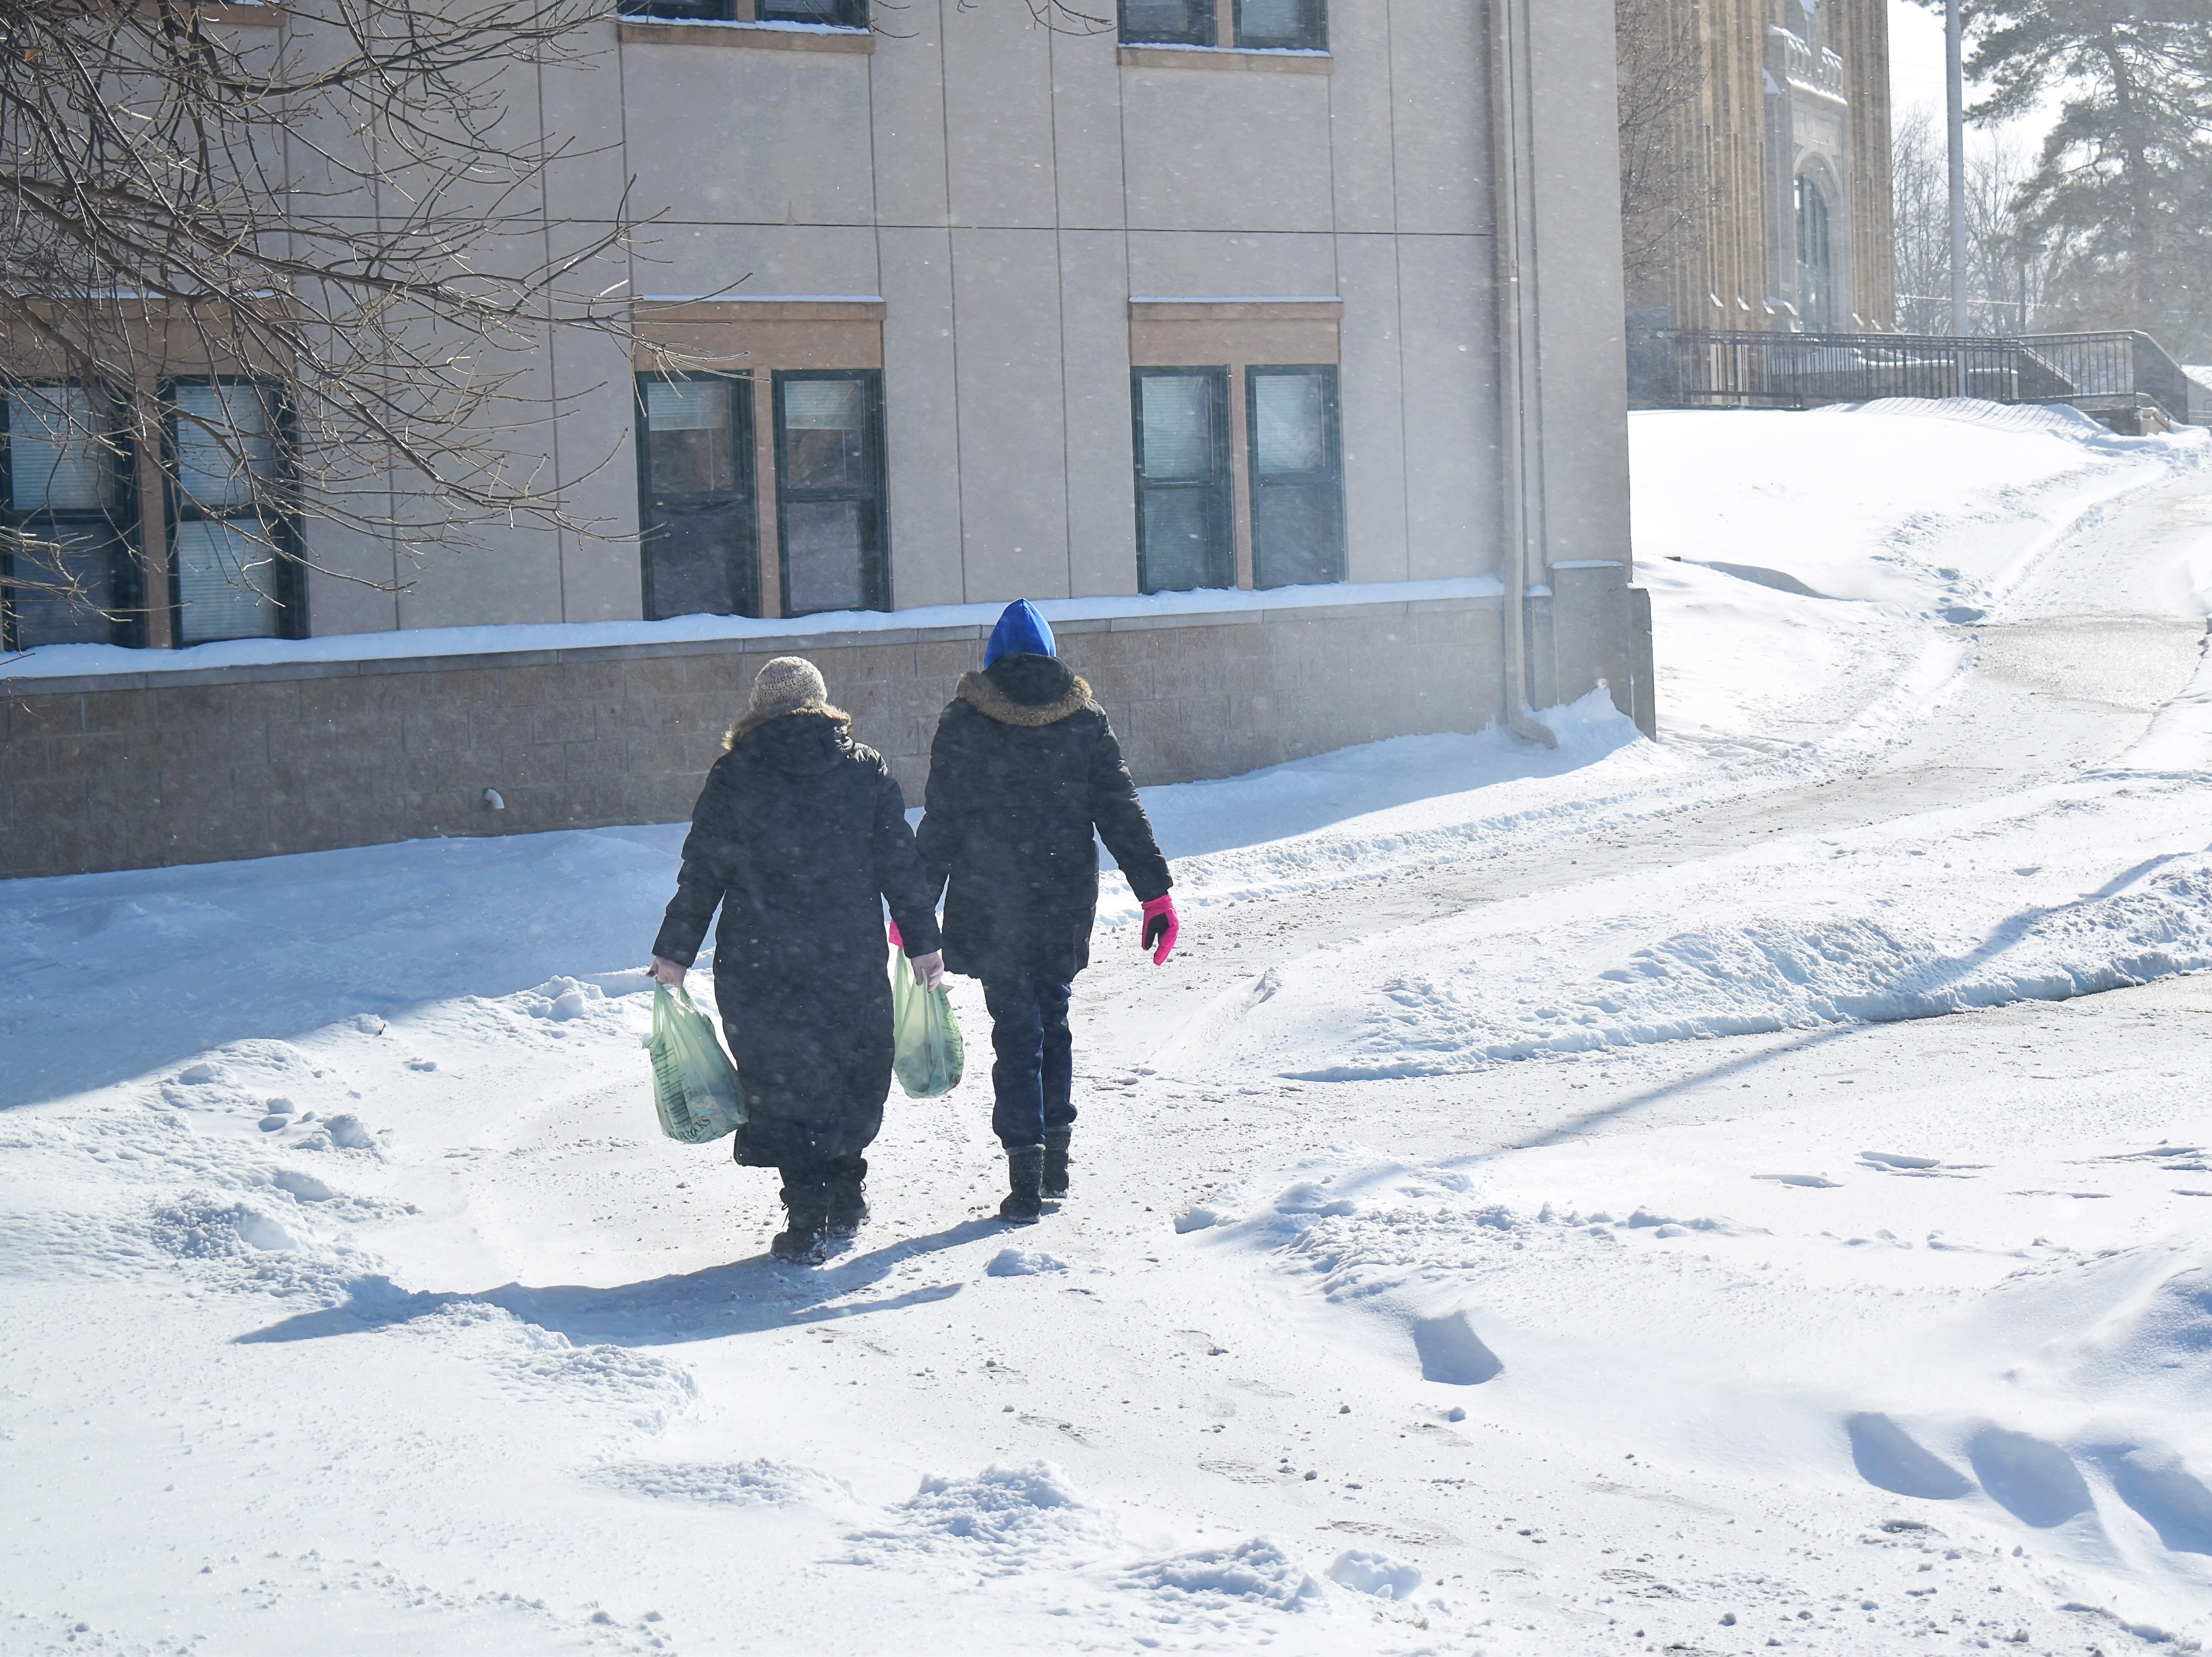 Jessica Eldridge and Natasha Northcutt of Battle Creek Montessori delivered meals to students on Tuesday.